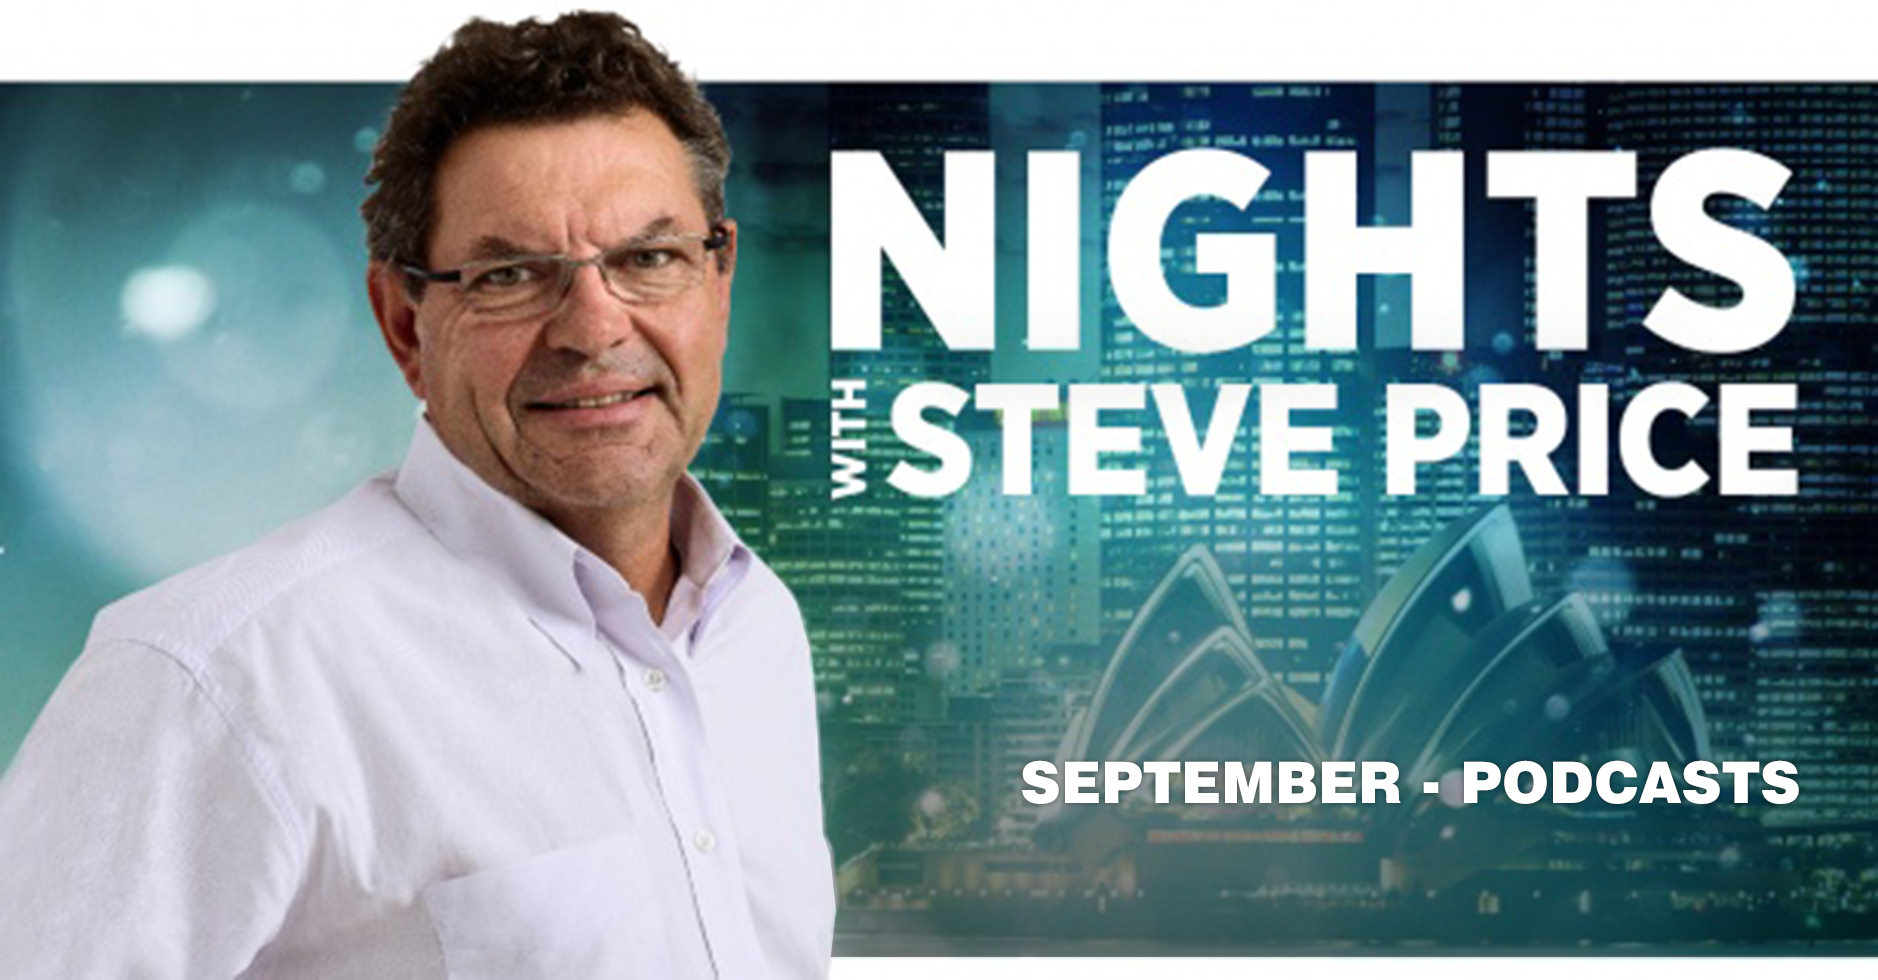 Nights StevePrice Hero September The Informed Investor: December 2017 Podcast